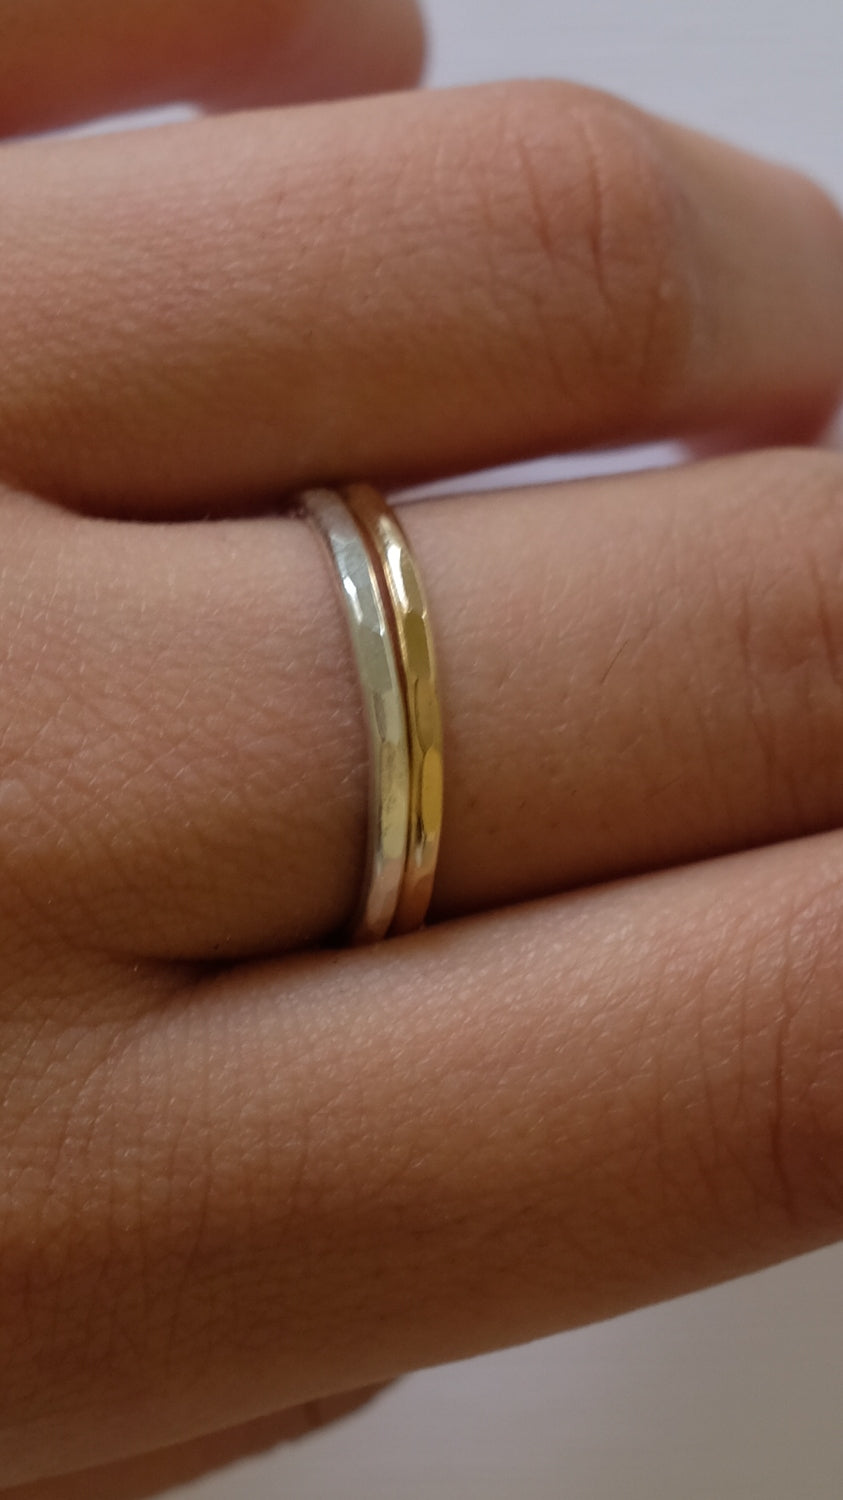 Sloane Jewelry Design Hammered Stacking Rings